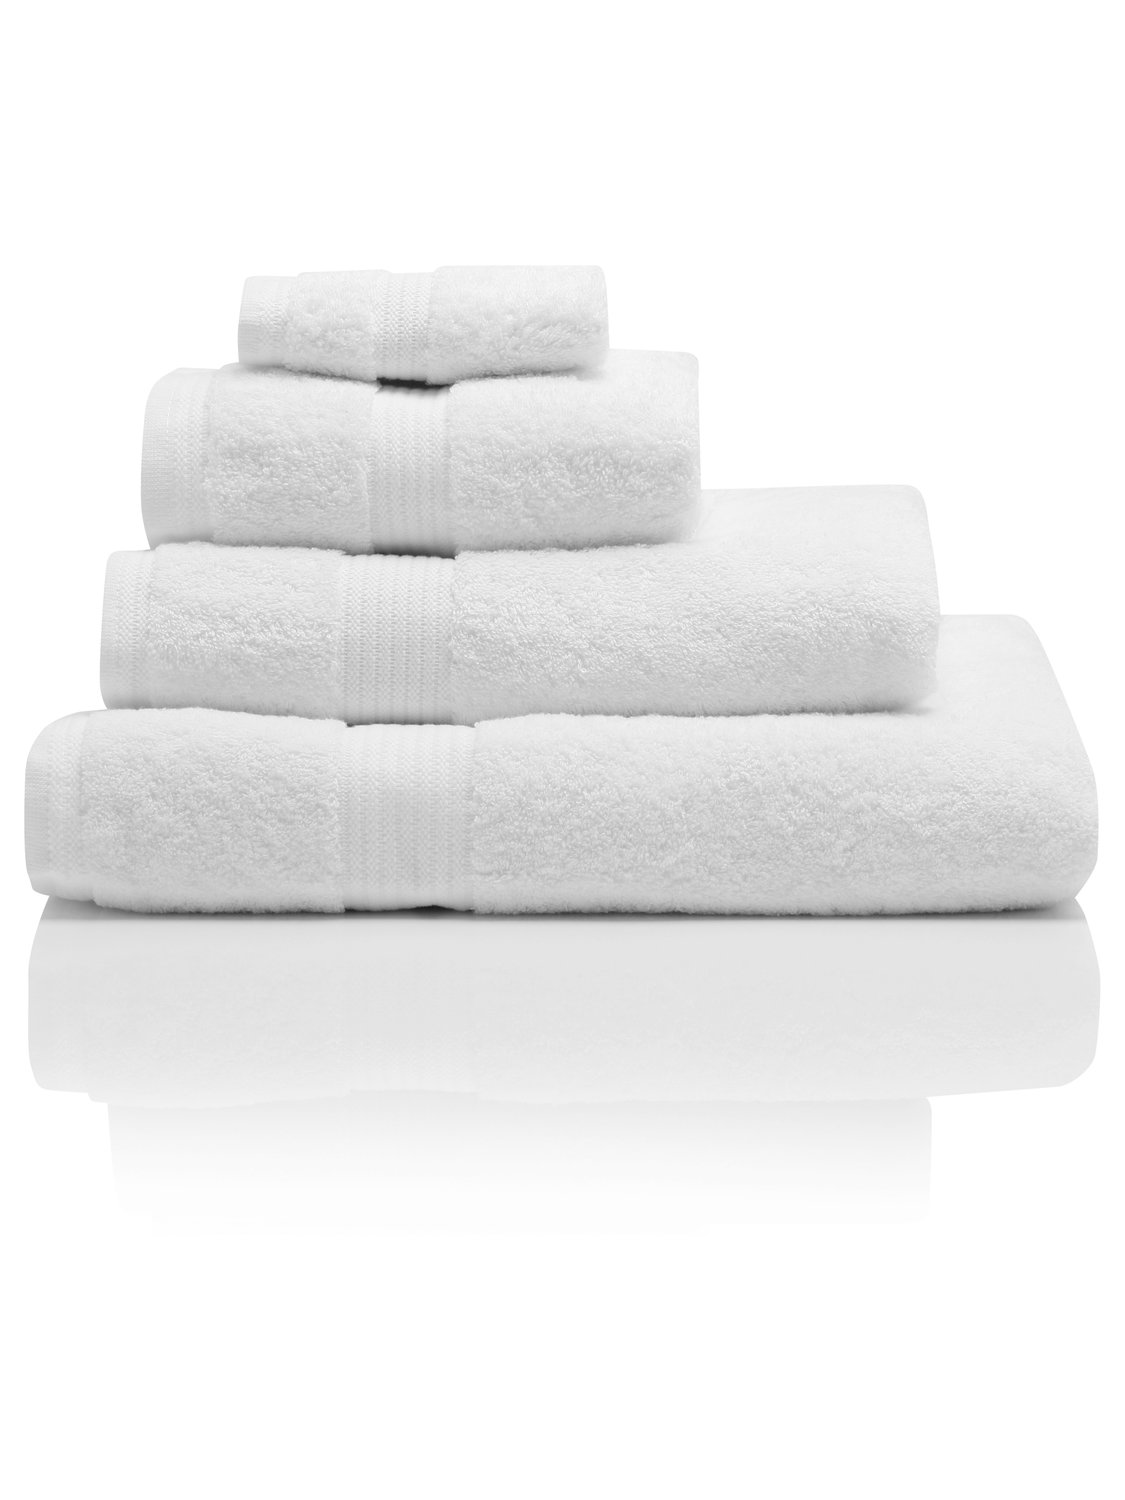 100% Combed Cotton 580Gsm Soft And Absorbent Bathroom Facecloth - White